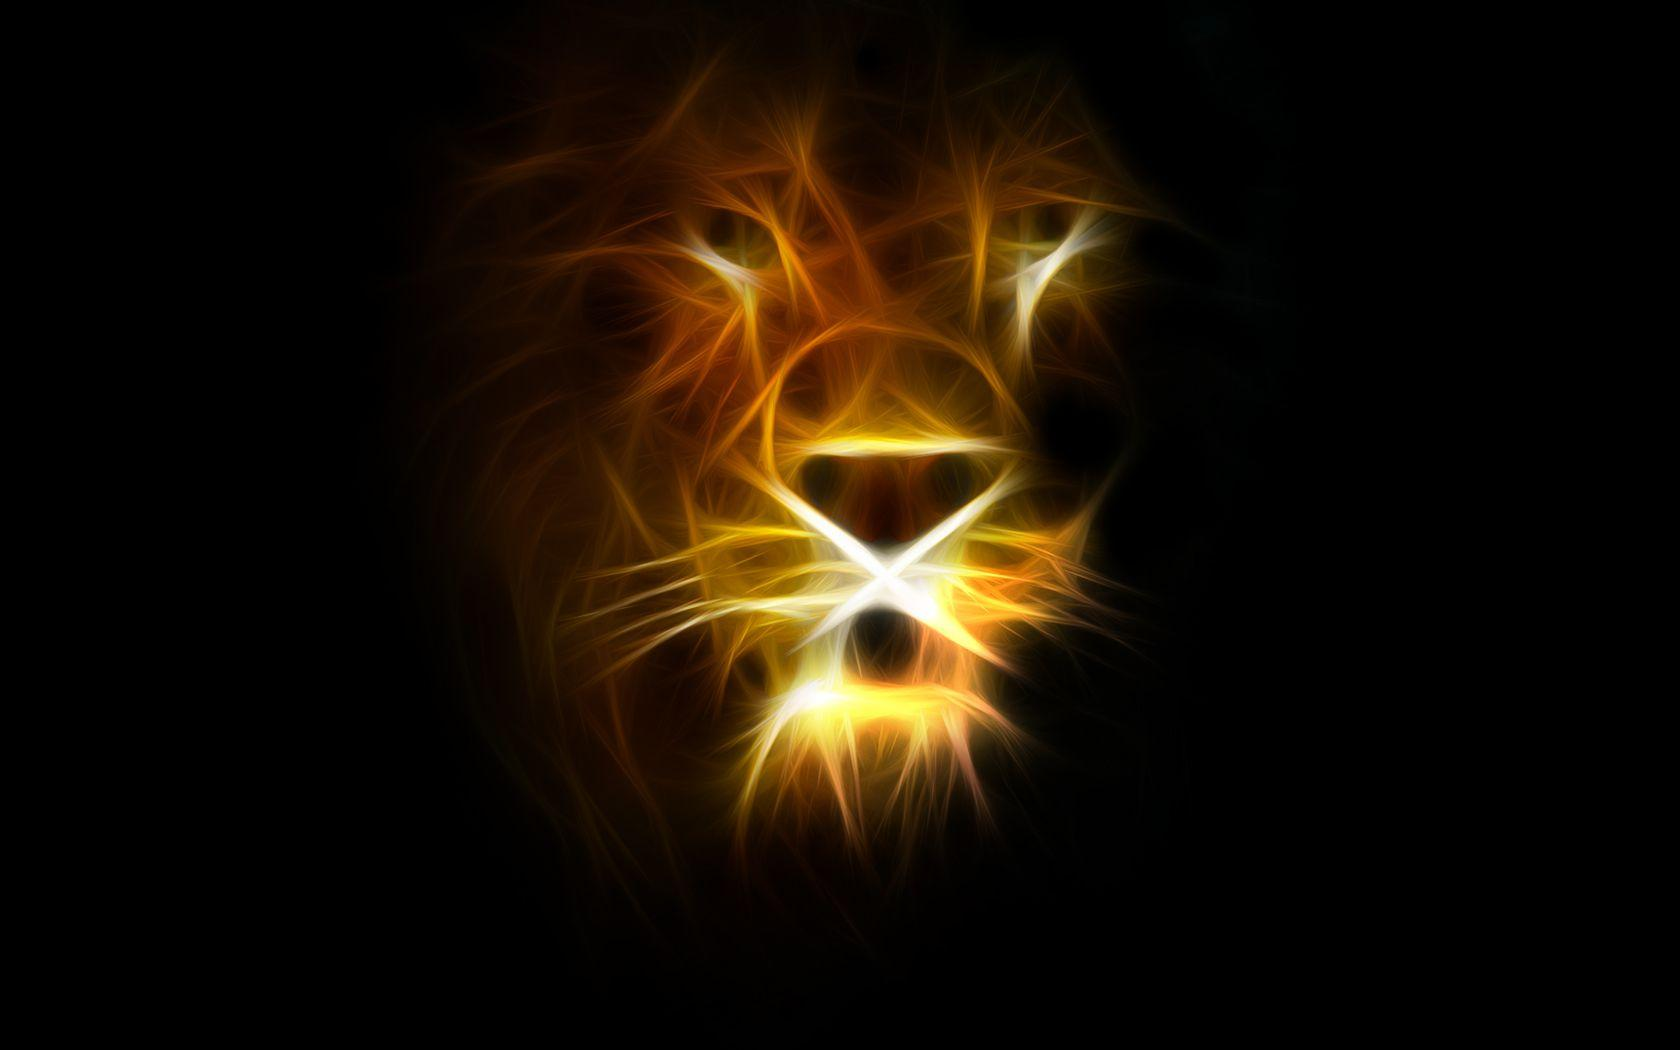 Astonishing Fire Lion Wallpapers Wallpaper Cave Download Free Architecture Designs Embacsunscenecom